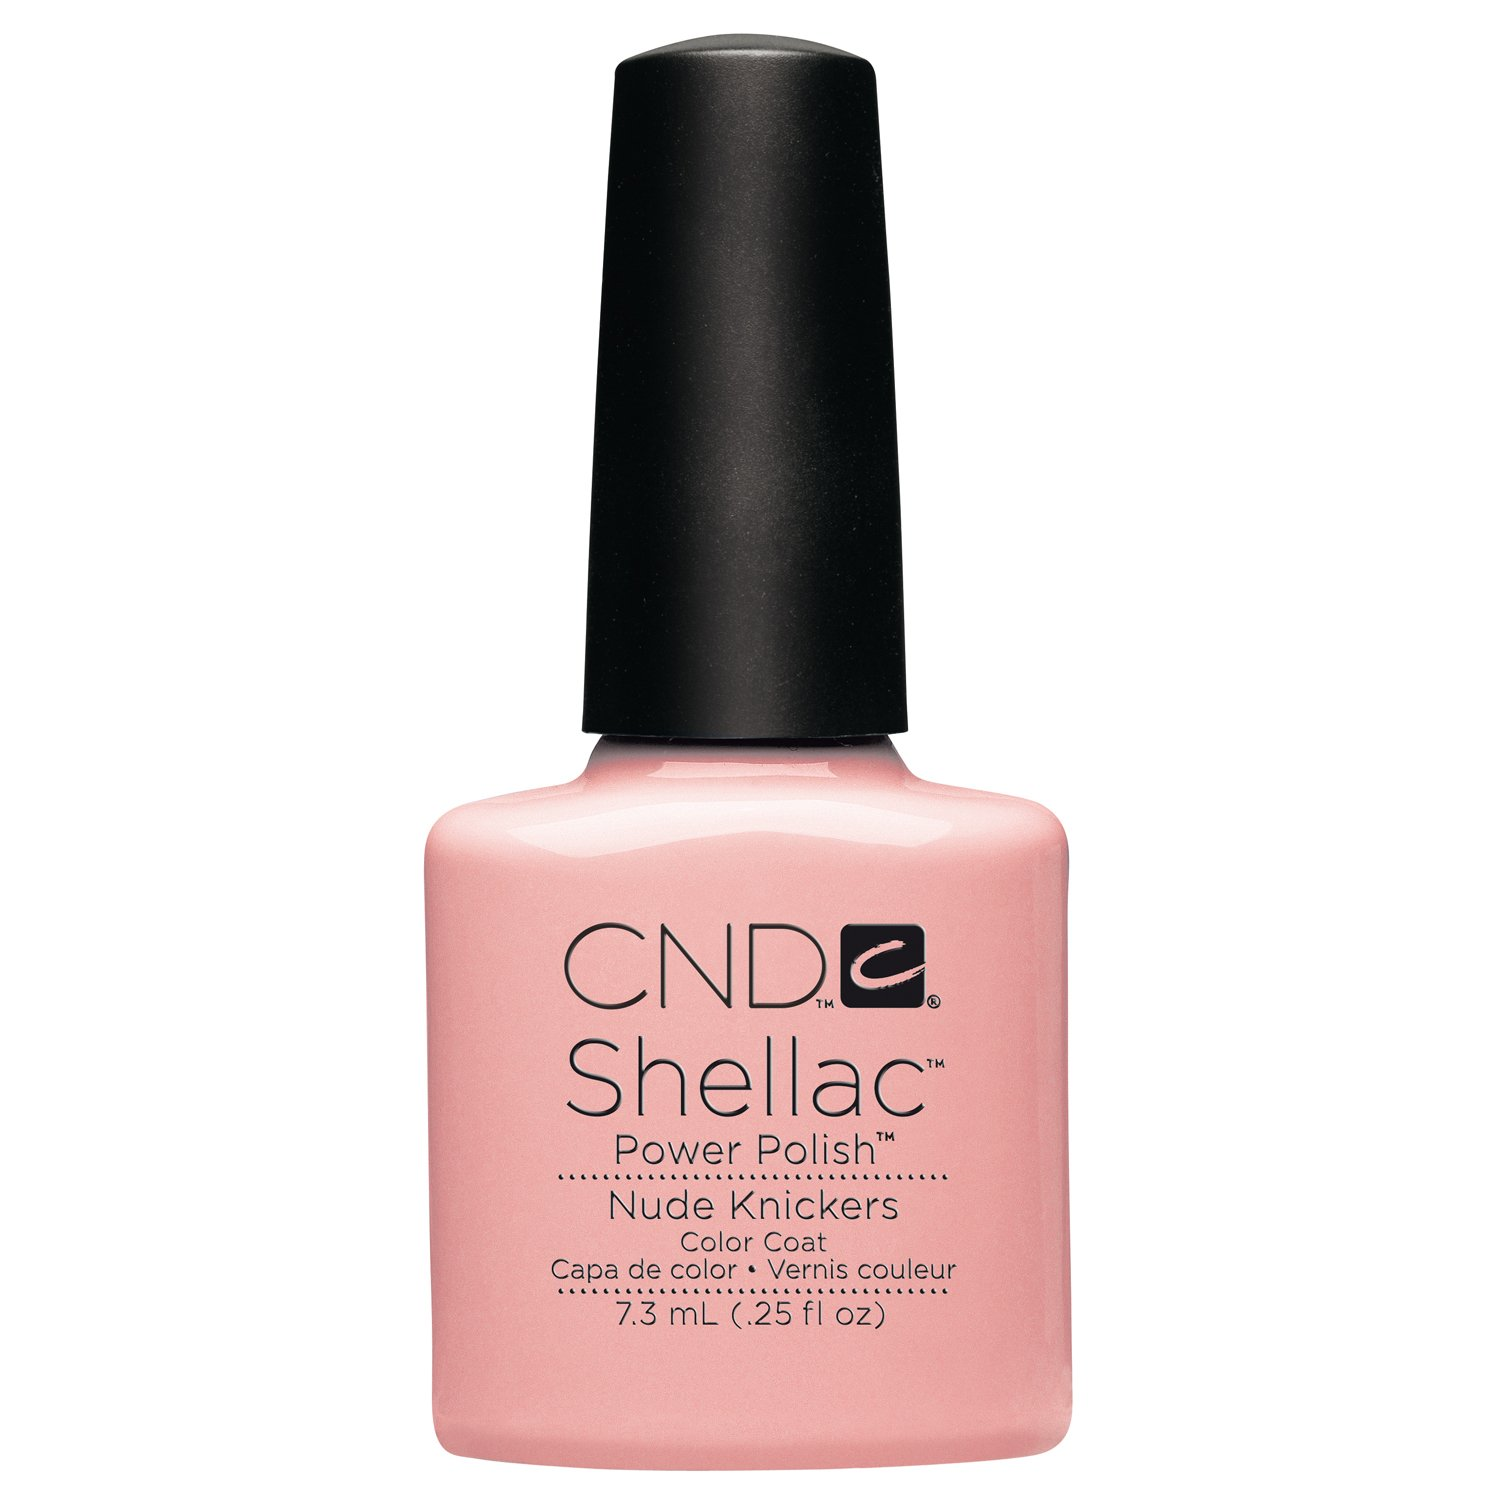 CND Shellac Clearly pink, 1er Pack (1 x 7,3 ml) CNDS0077